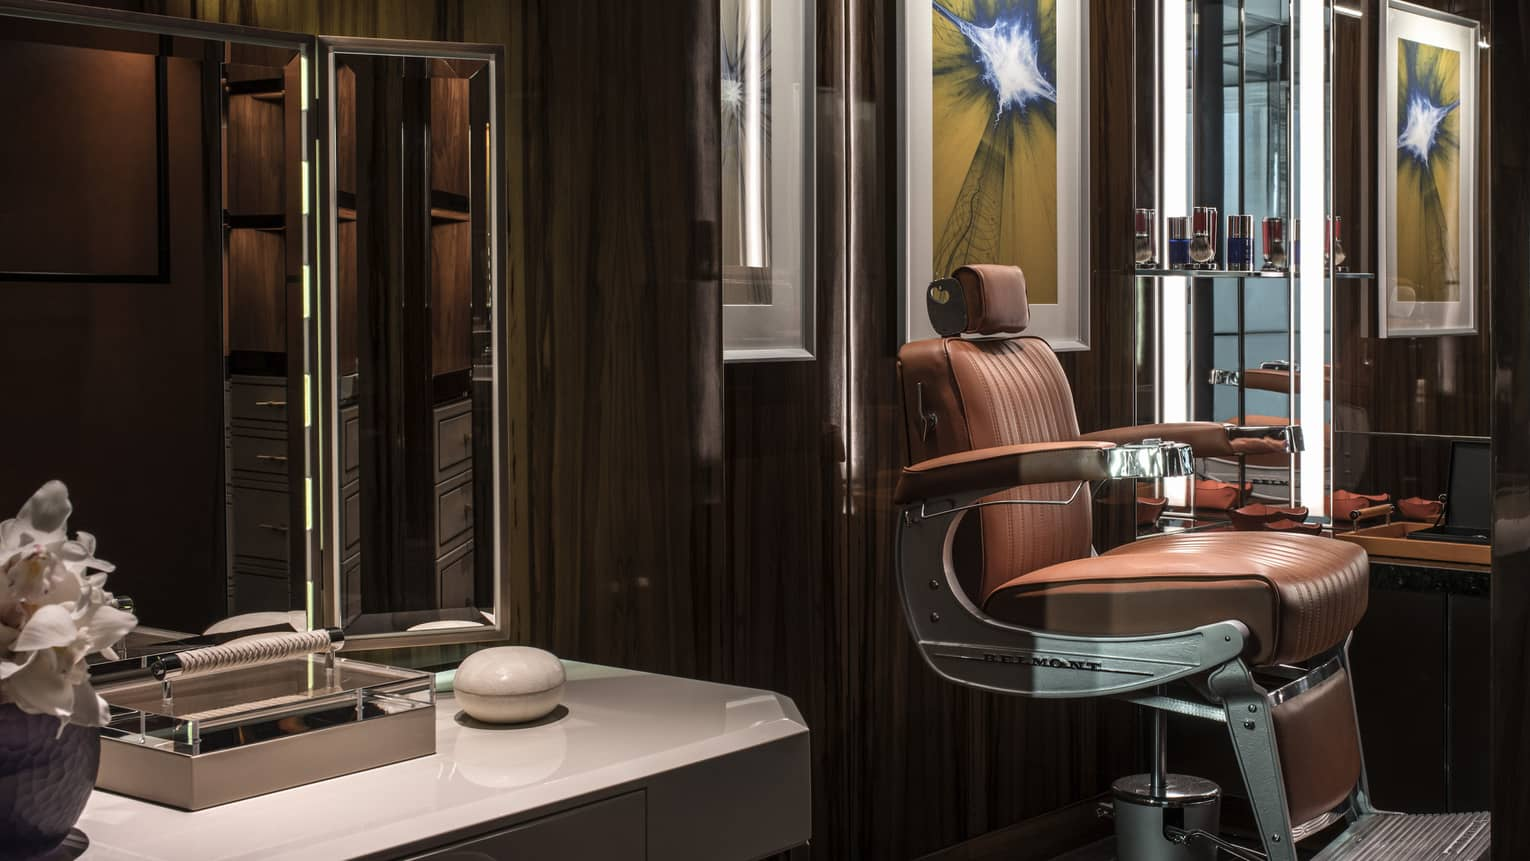 Brown leather barber chair, white counter with mirror in dimly-lit salon with dark walls